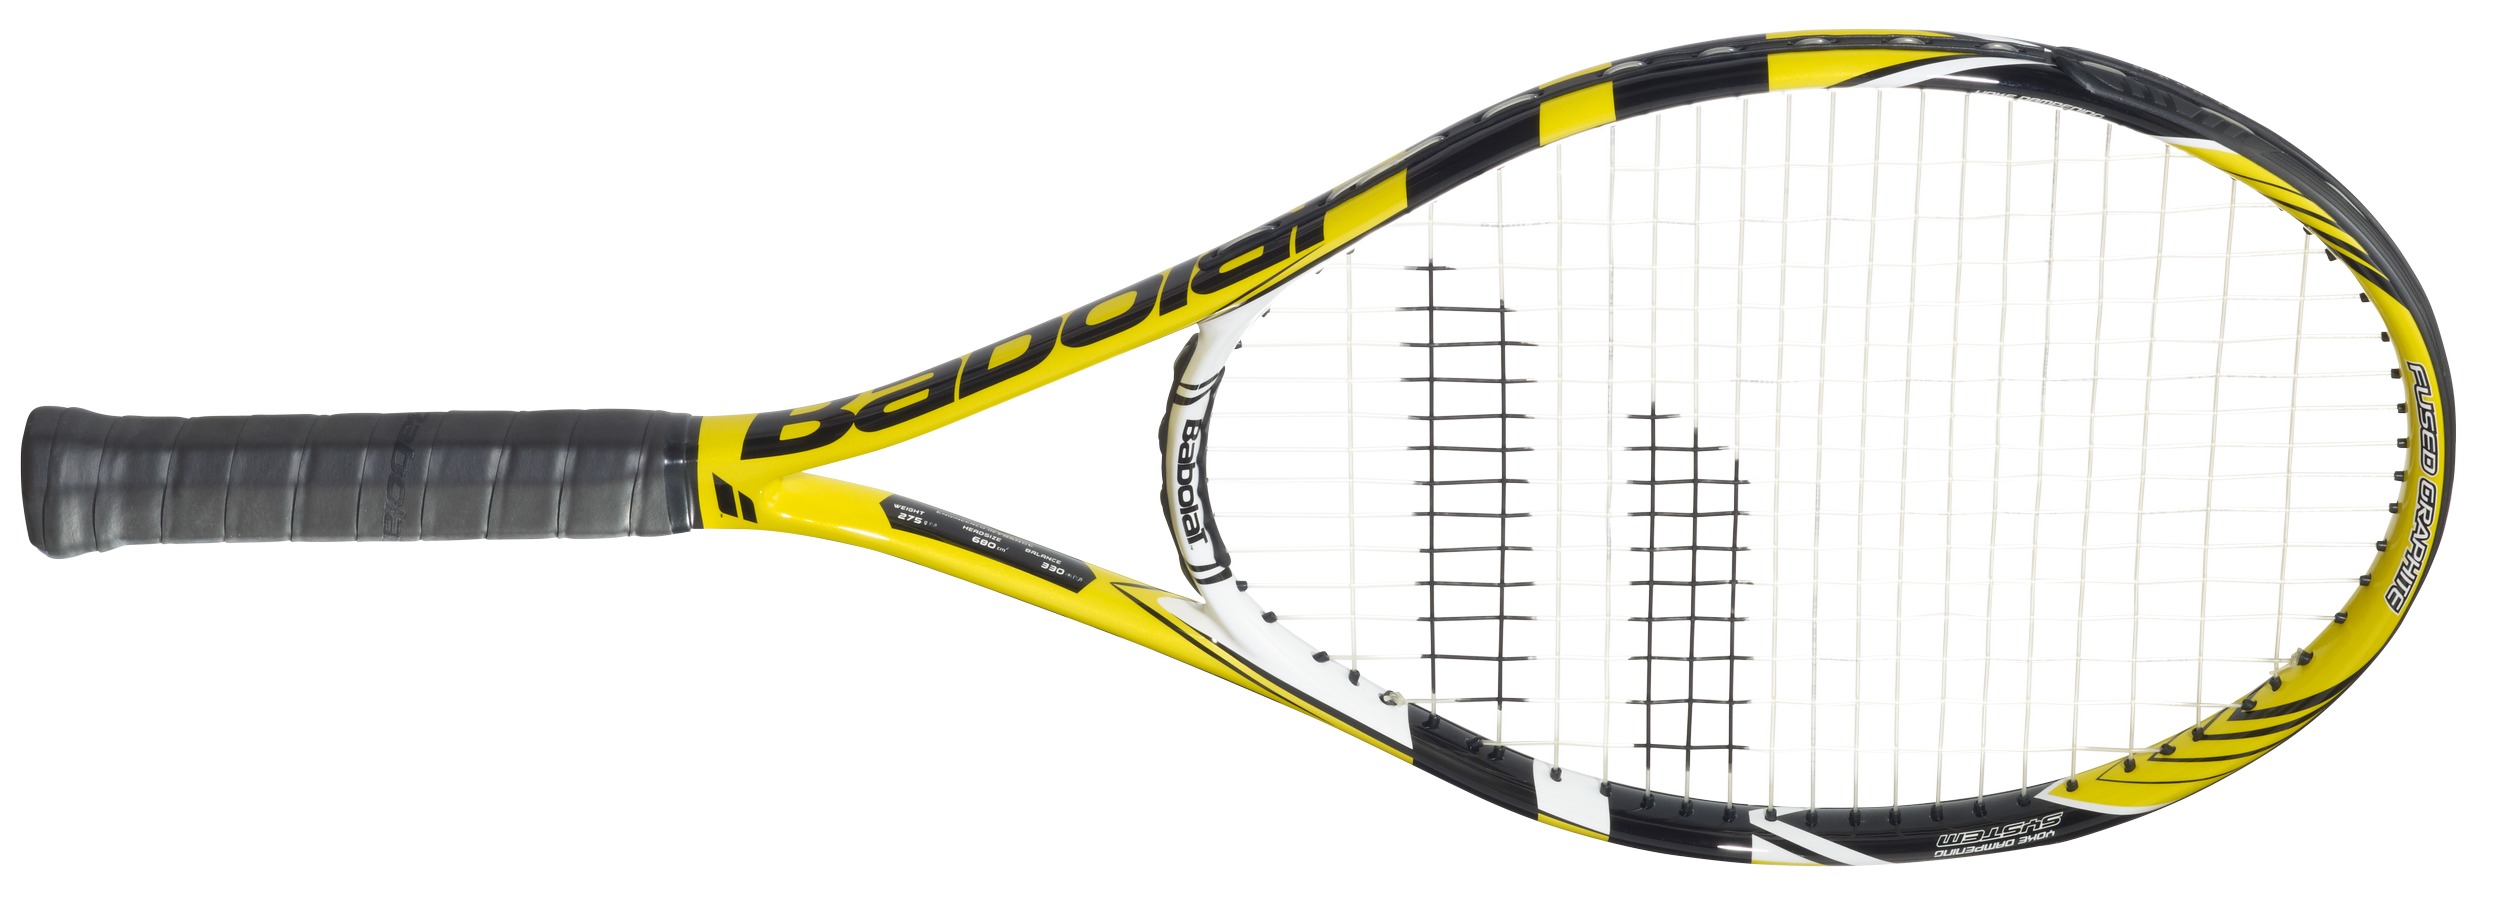 Clipart tennis racket with money clip black and white download Tennis PNG images free download, tennis ball racket PNG clip black and white download